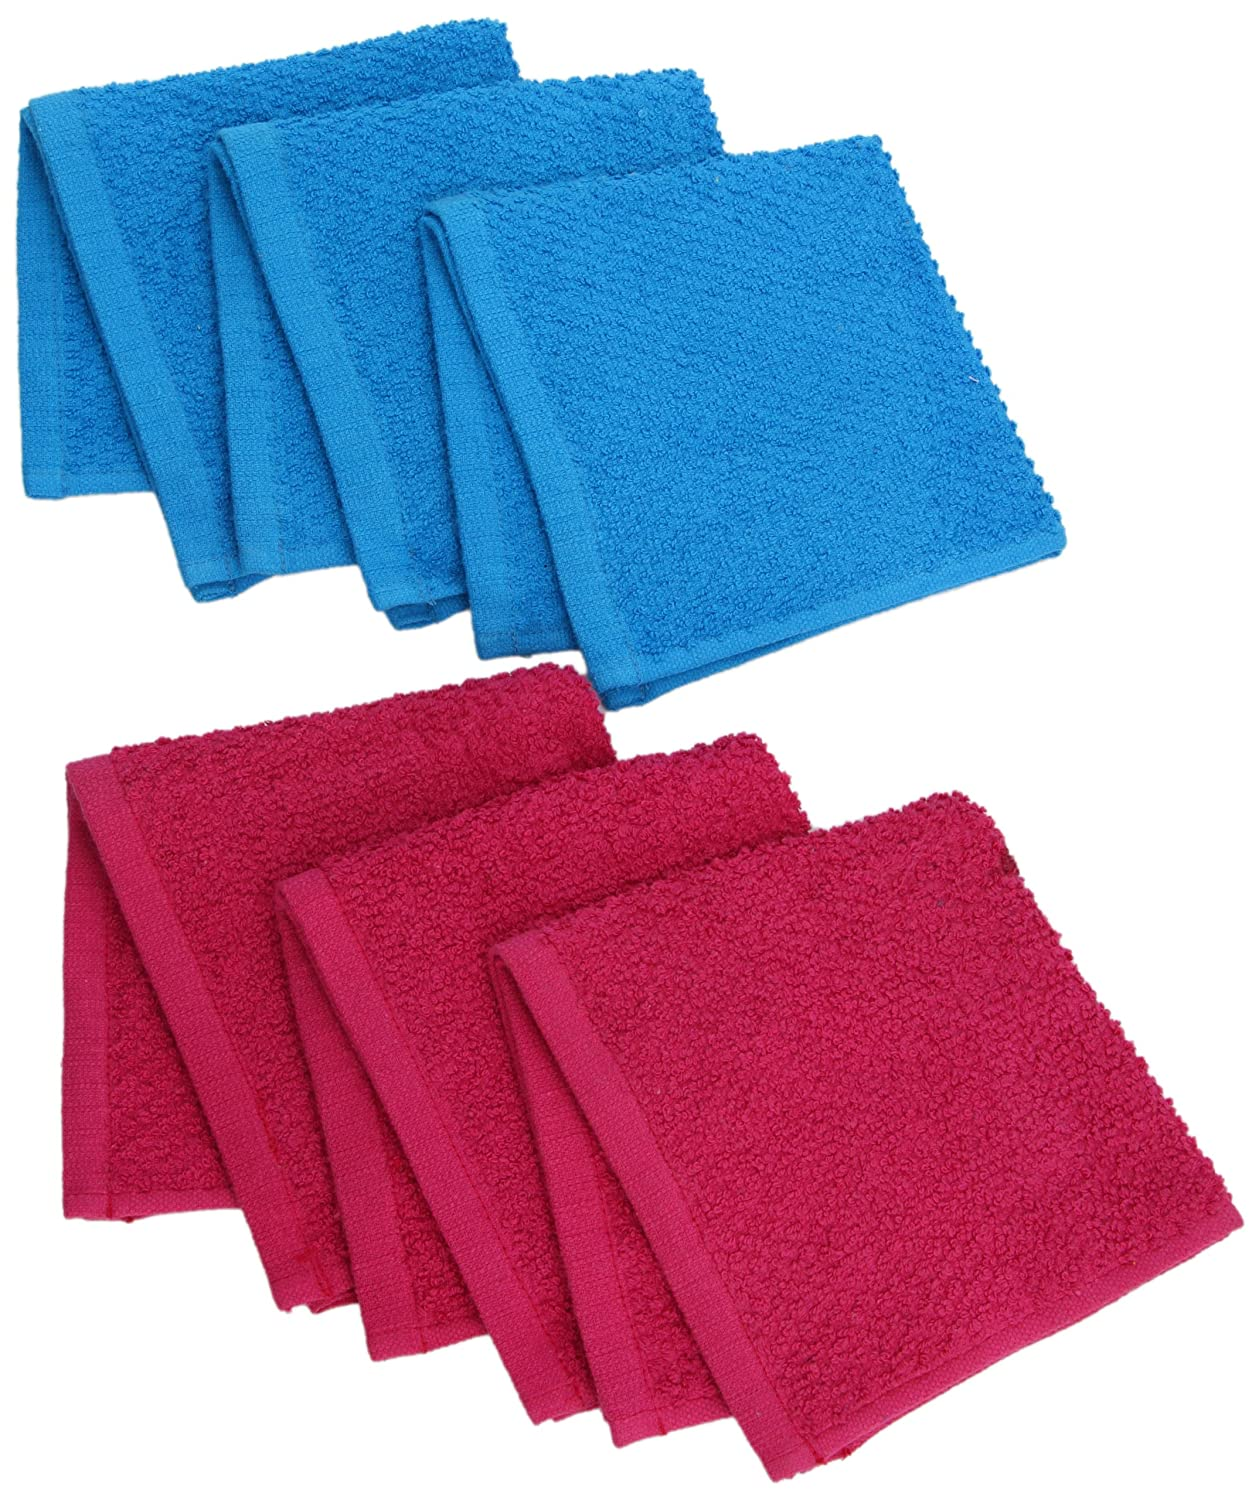 (Diva Pink/Blue Raspberry) - Northpoint 6-Piece Wash Cloth Pack, 30cm by 30cm B00CV15TP2 Diva Pink/Blue Raspberry